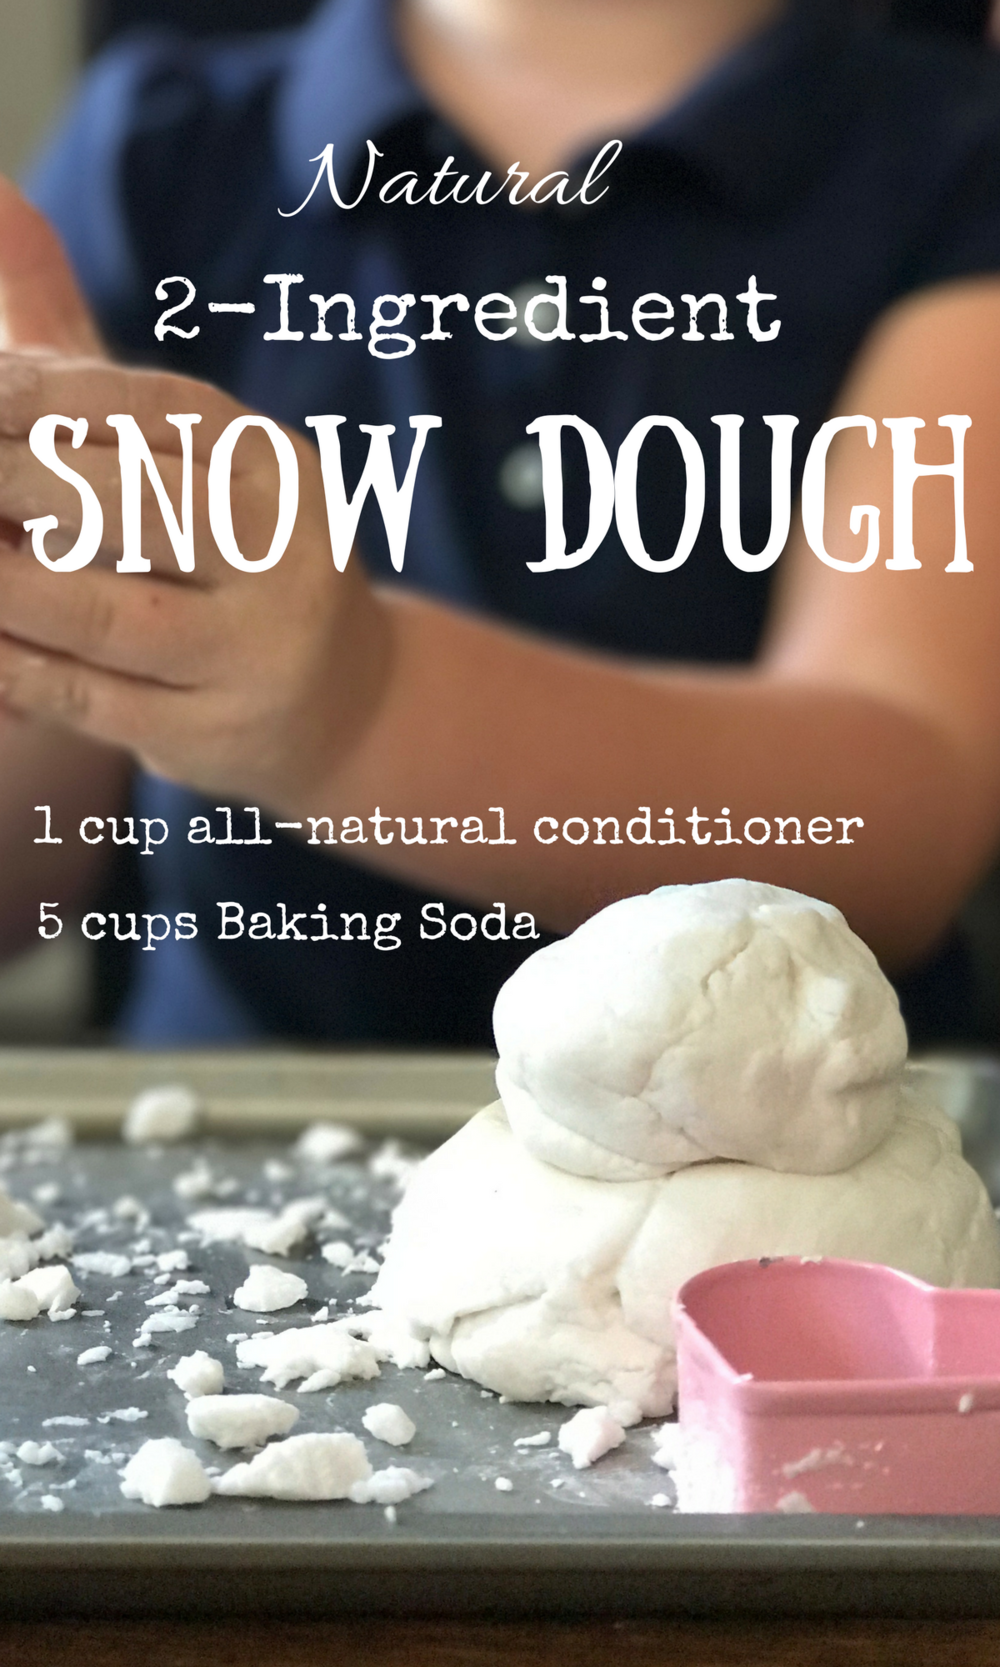 Natural 2-Ingredient Snow Dough